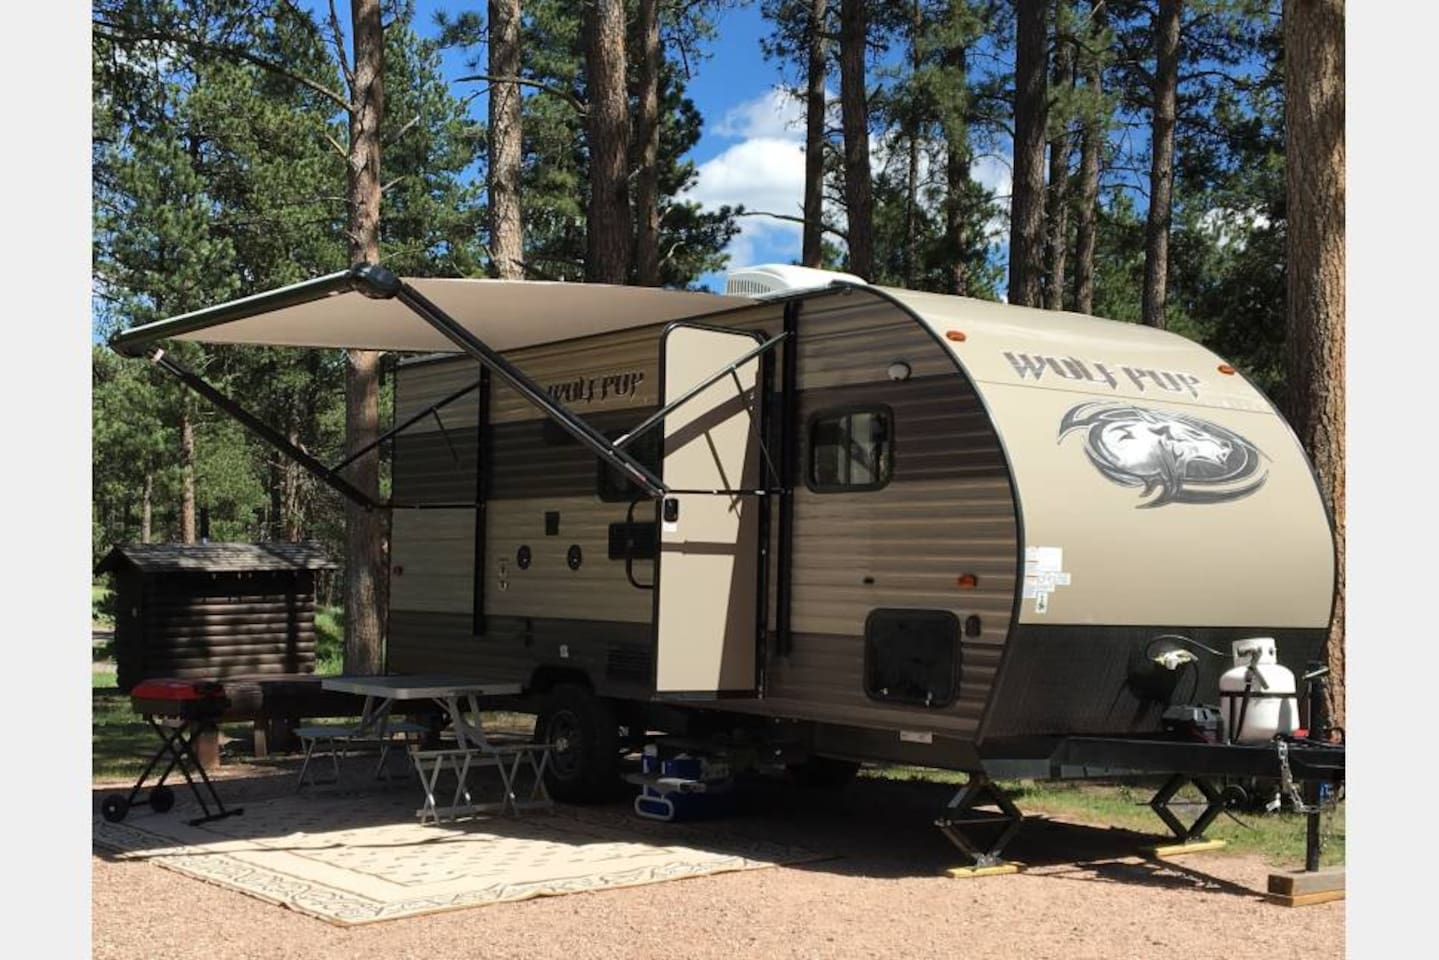 Enjoy a camping experience in our New Camper with all the needed amenities included.